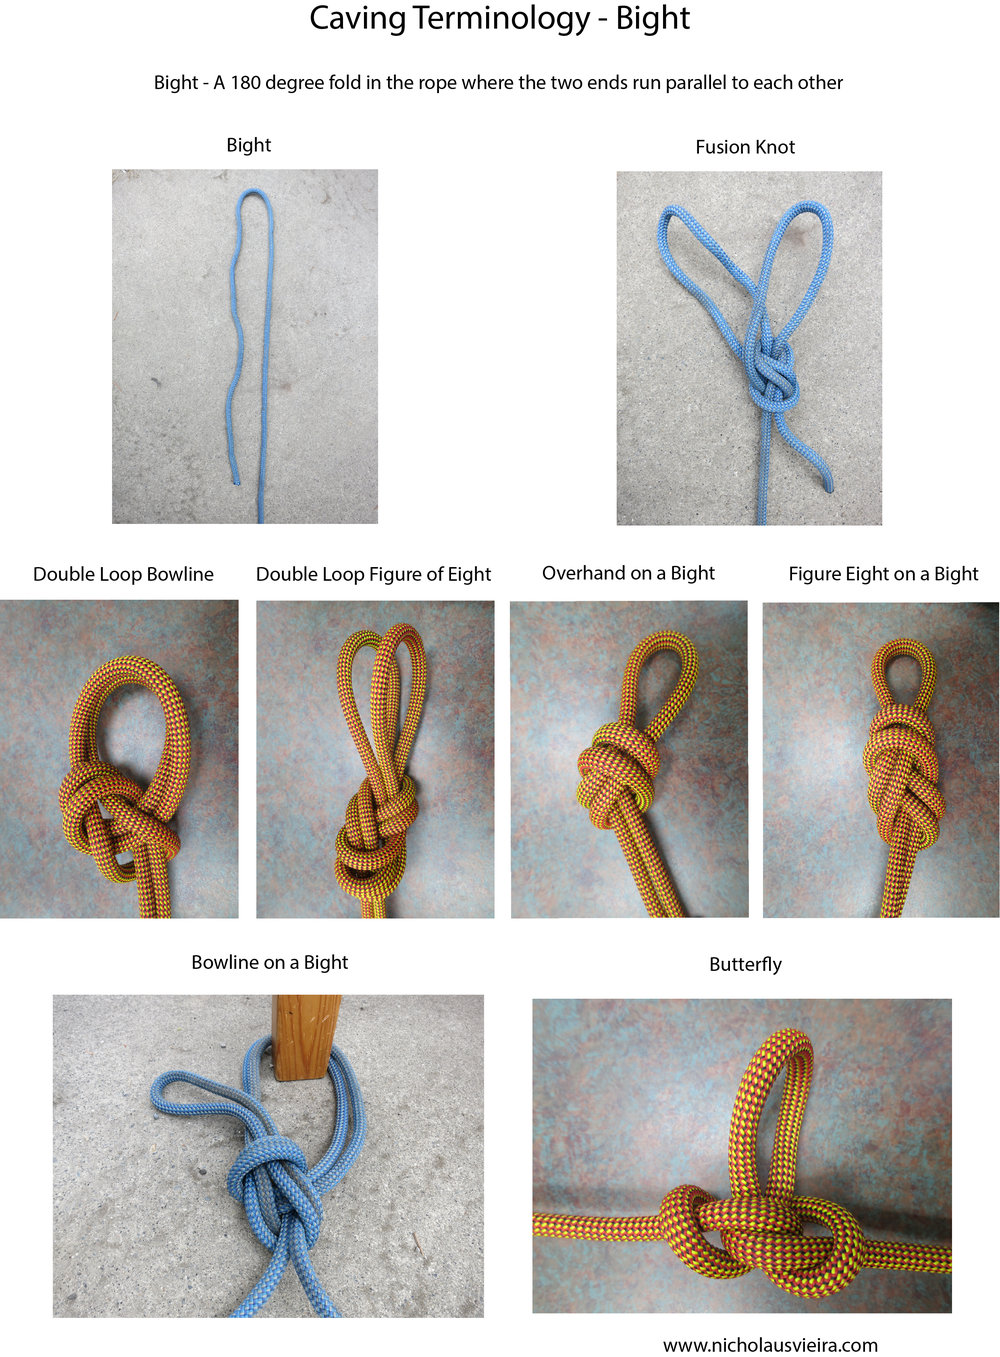 Knots General Information For Cavers Climbers And Canyoneers Running Bowline Knot Diagram Terminology Bight